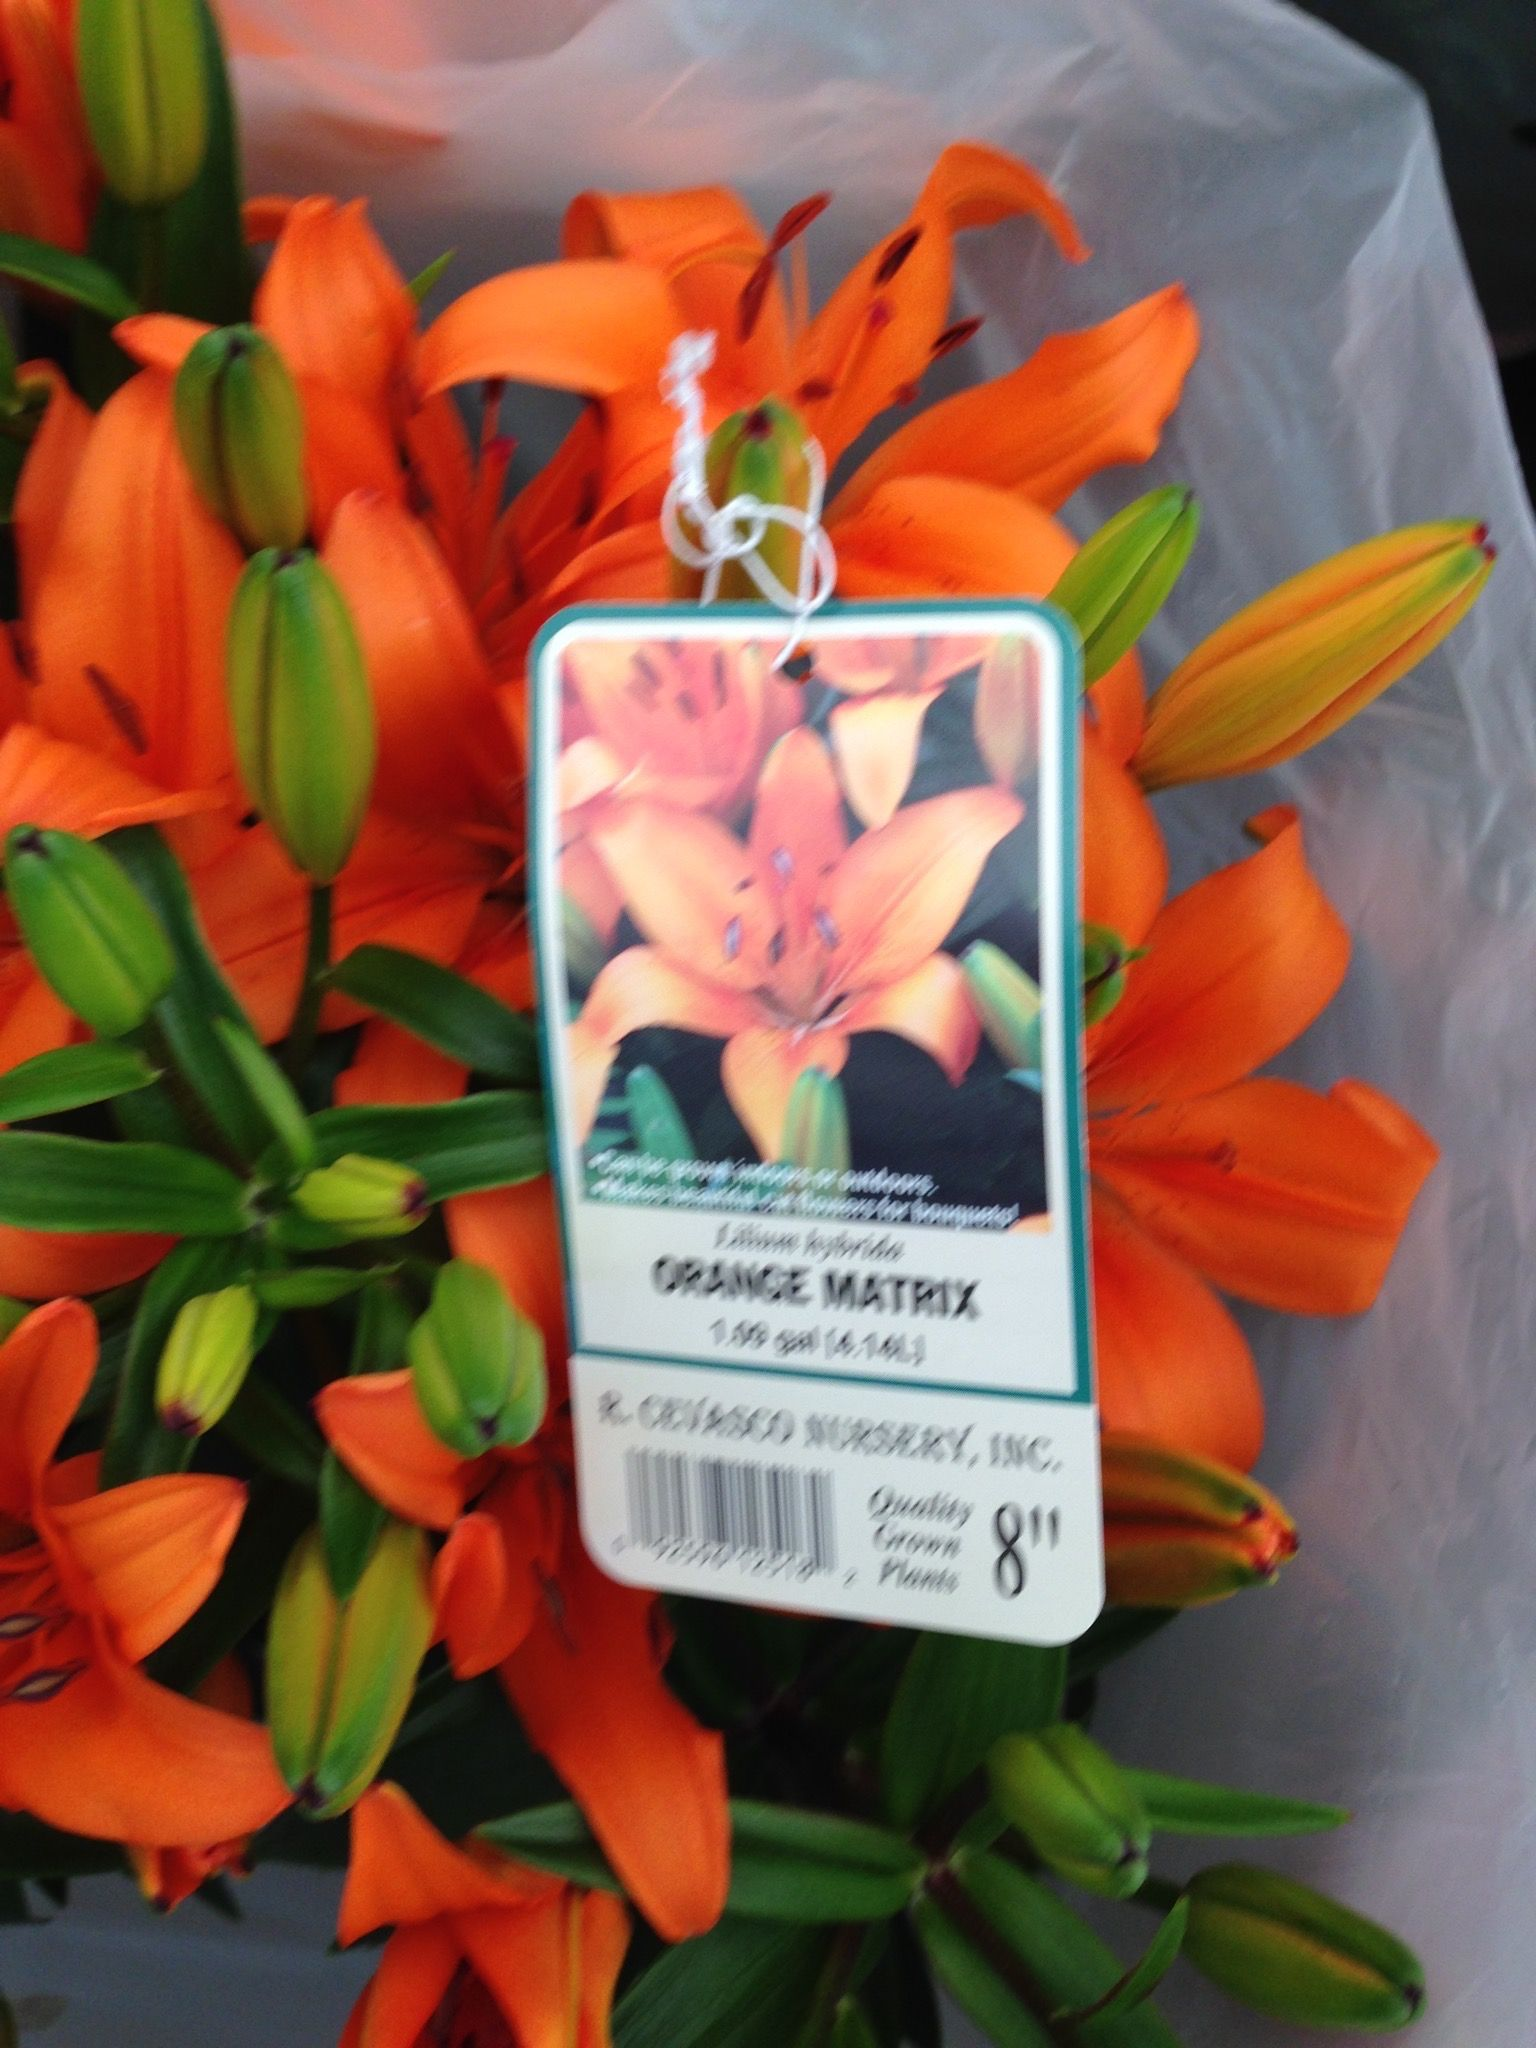 22. Orange Matrix Lilly - plant near citrus trees